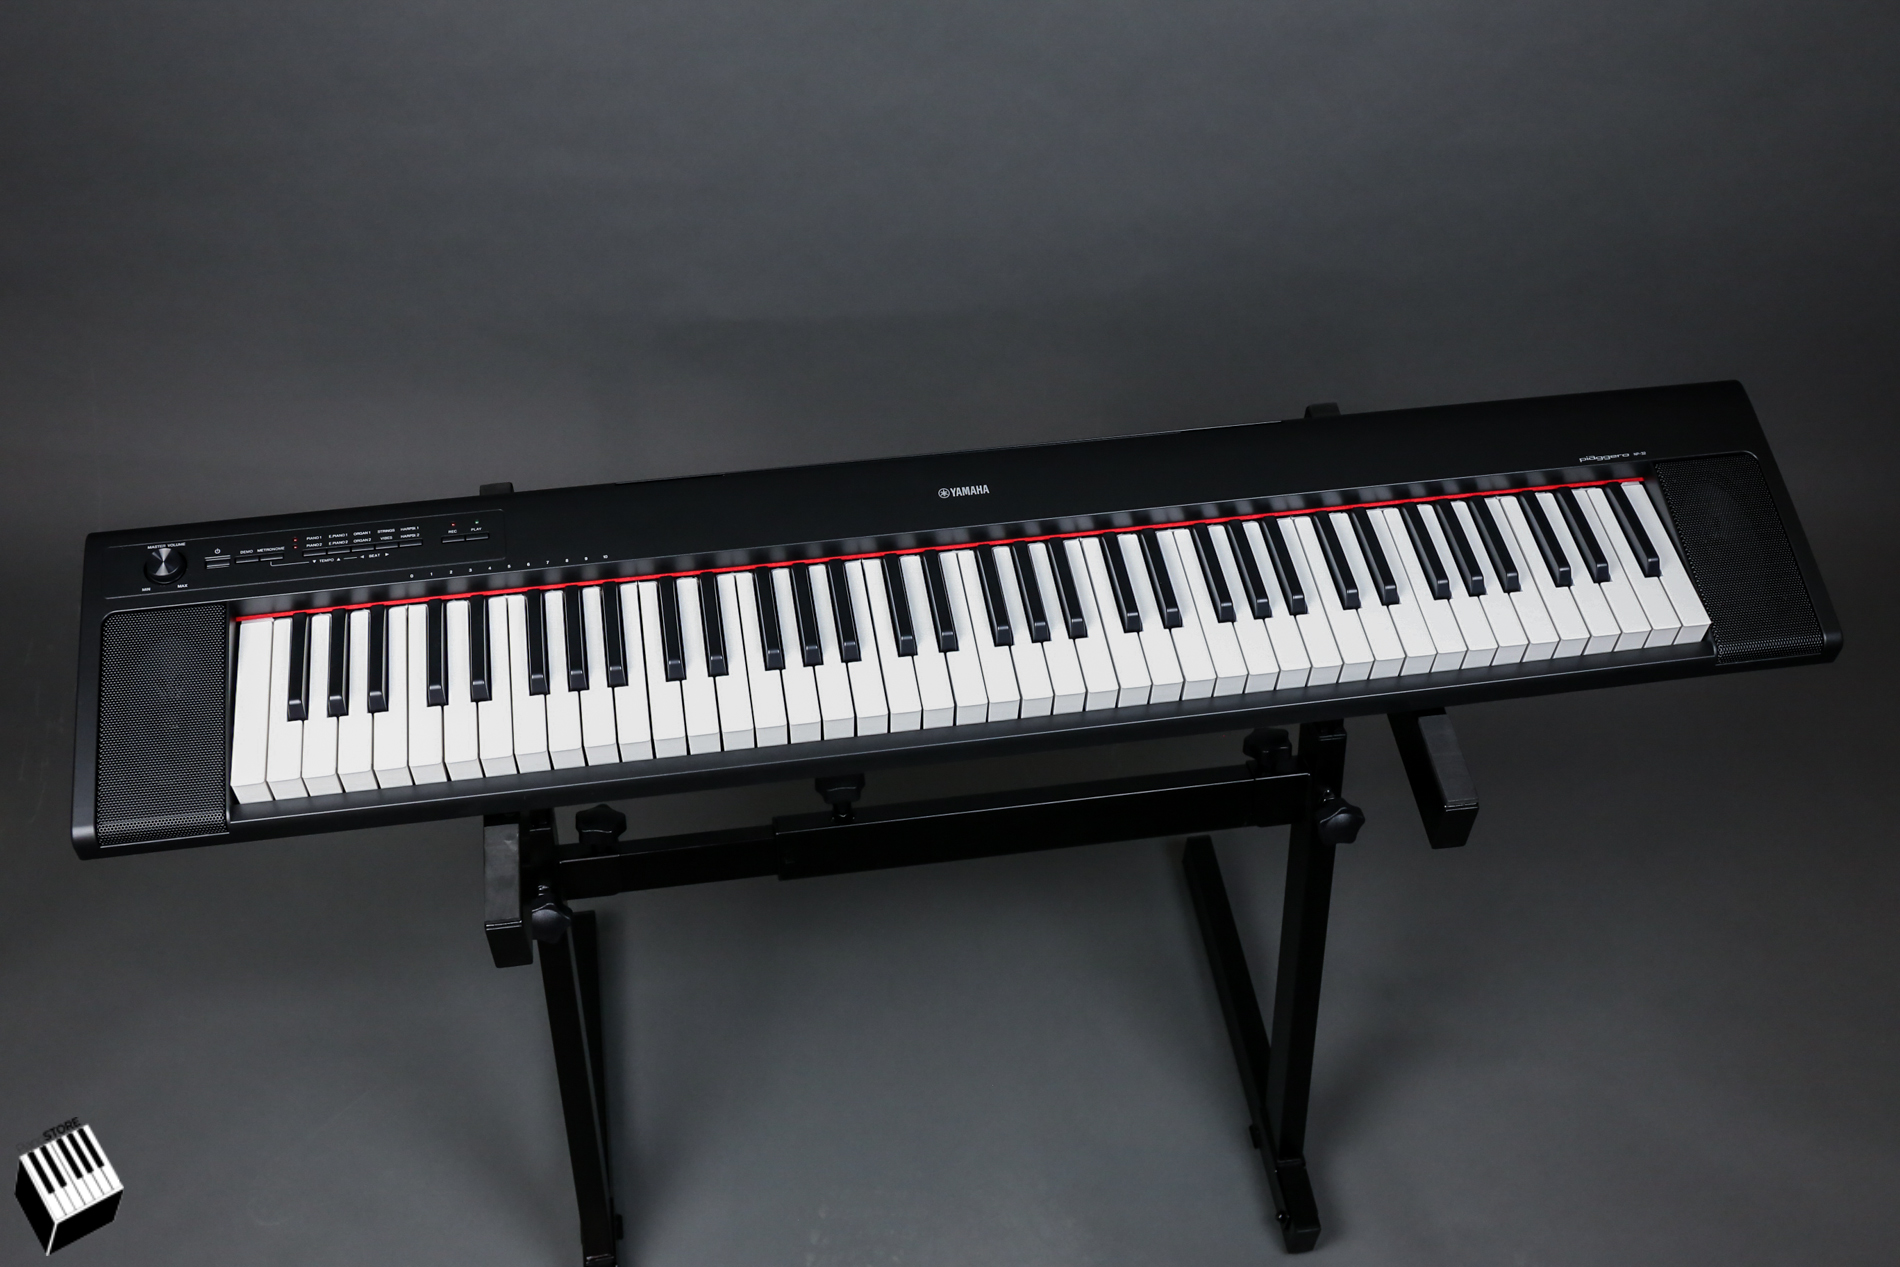 yamaha np 32 mobilny keyboard serii piaggero keyboardy. Black Bedroom Furniture Sets. Home Design Ideas